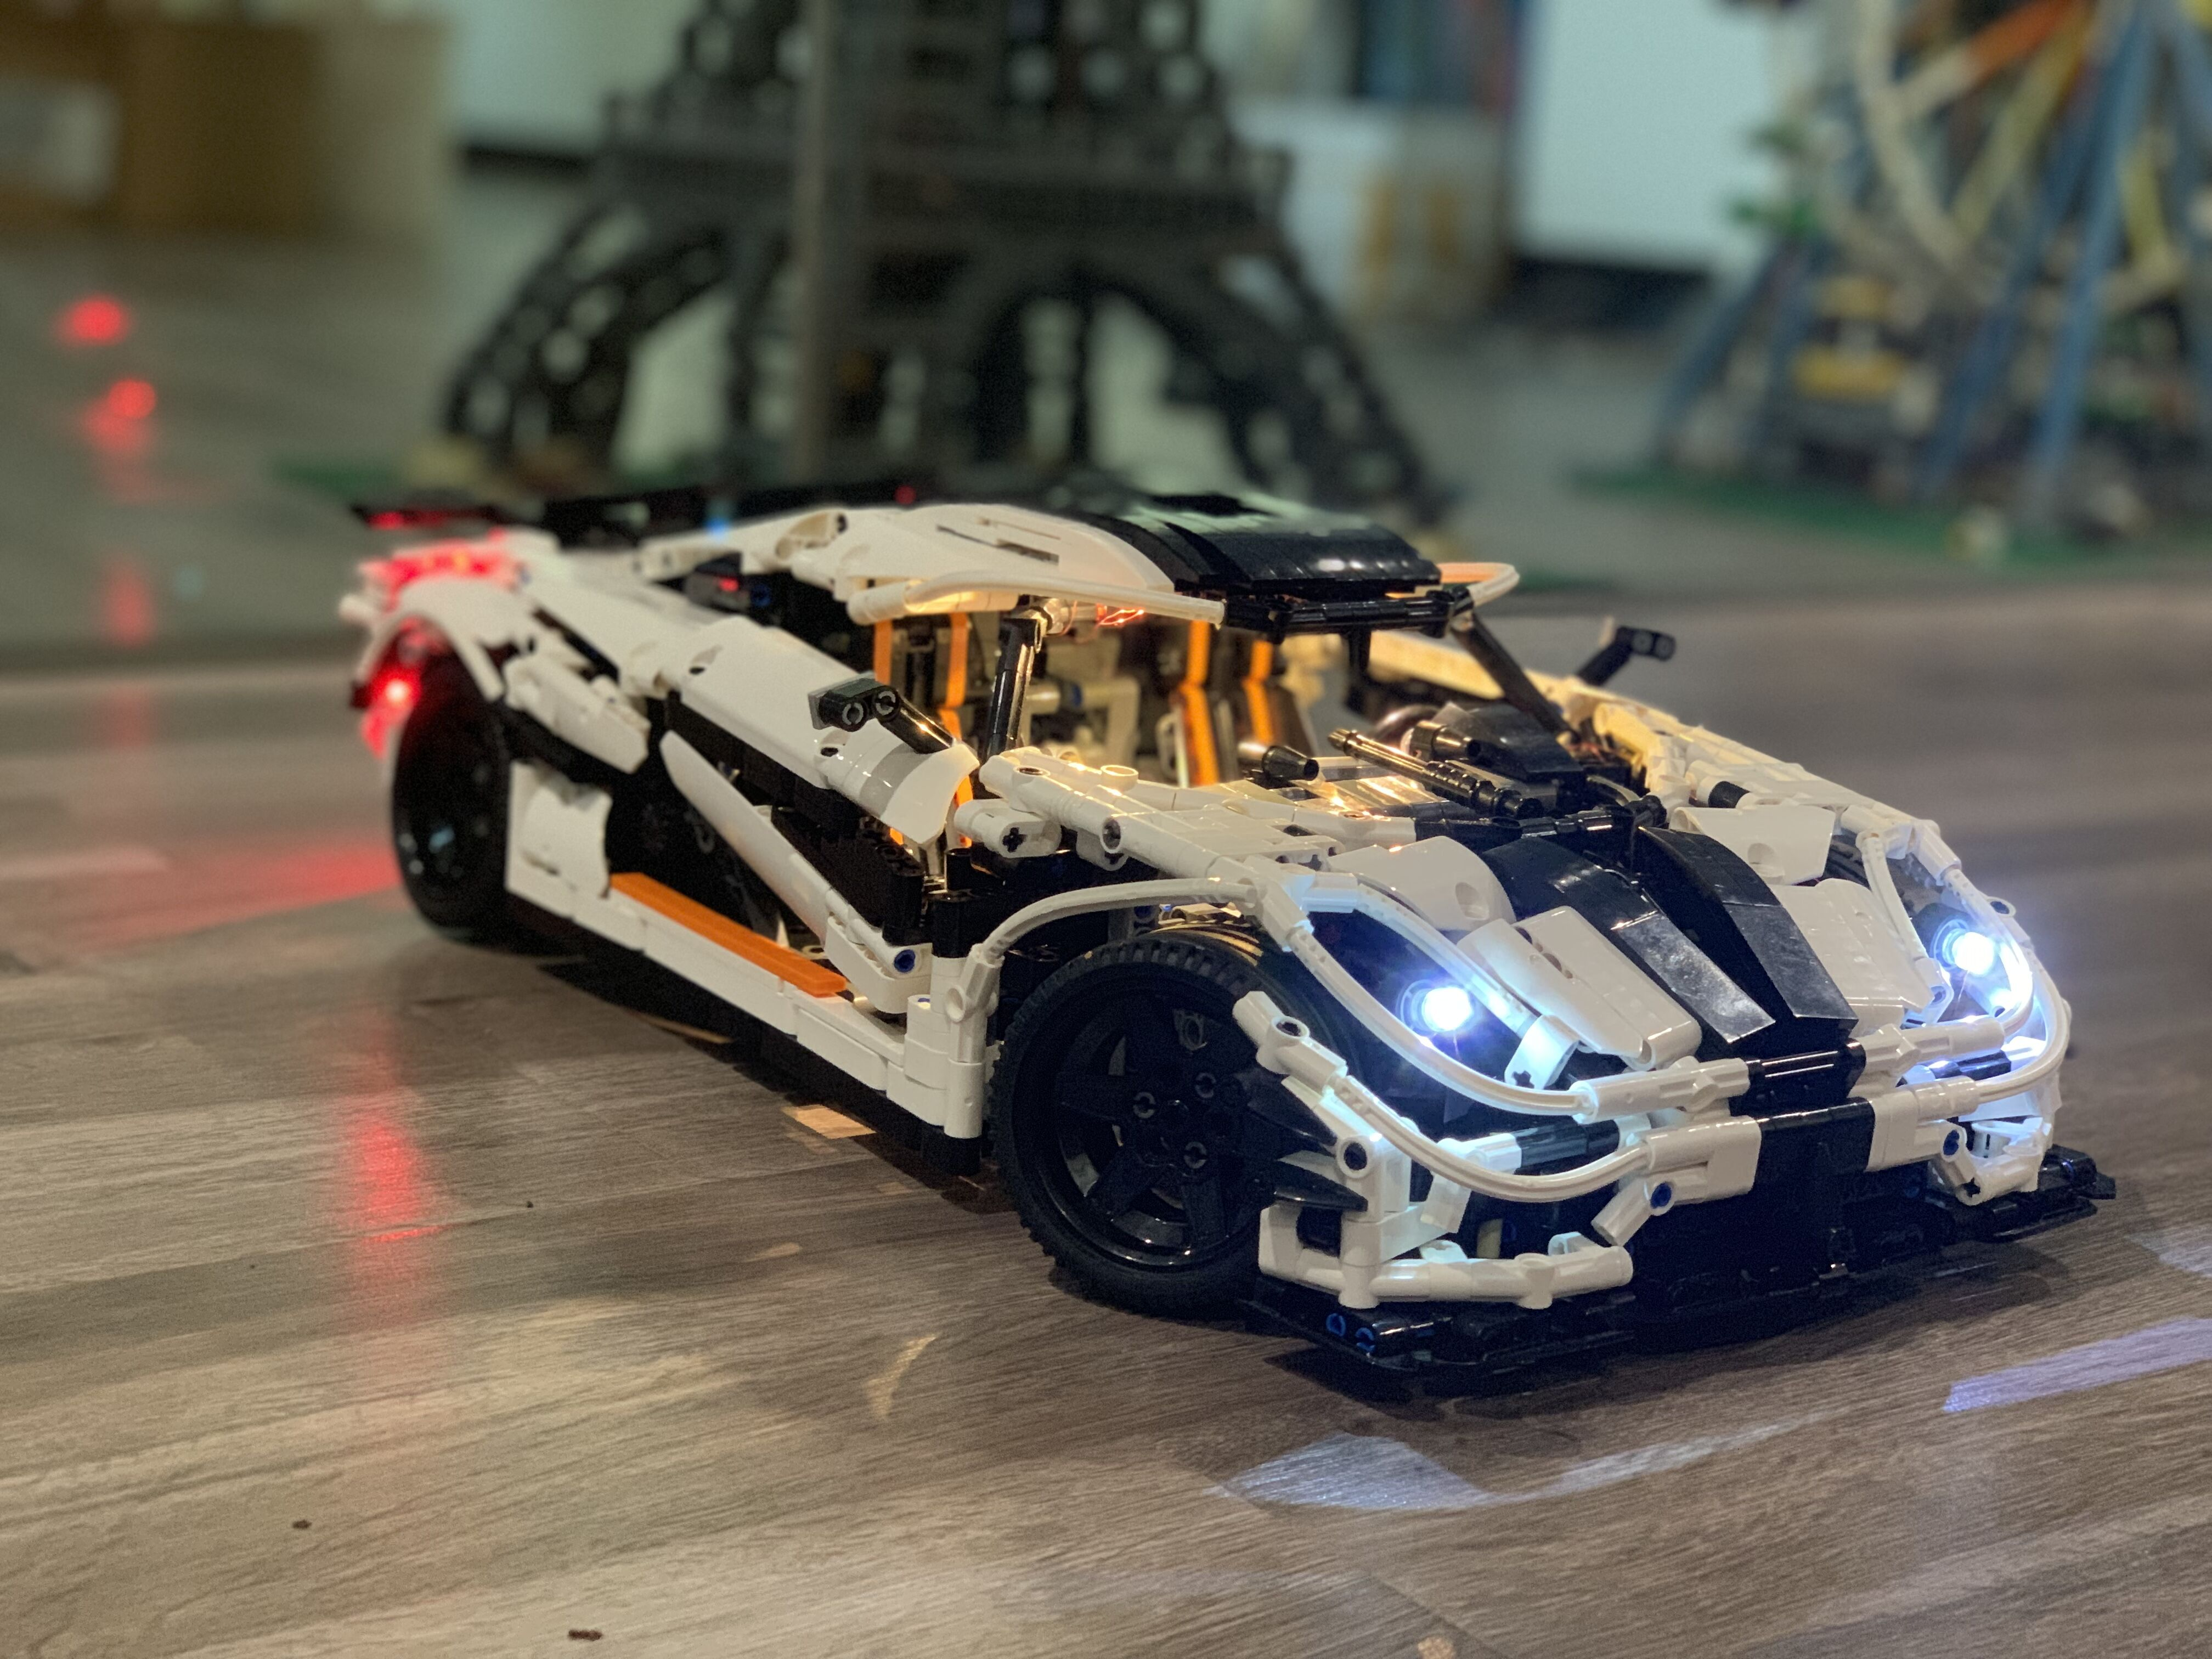 Koenigsegg One DIY Led Light Set For Compatible IEGOset MOC - 4789 Rebrickabl <font><b>23002</b></font> technic race Car Building Blocks Toys Gifts image